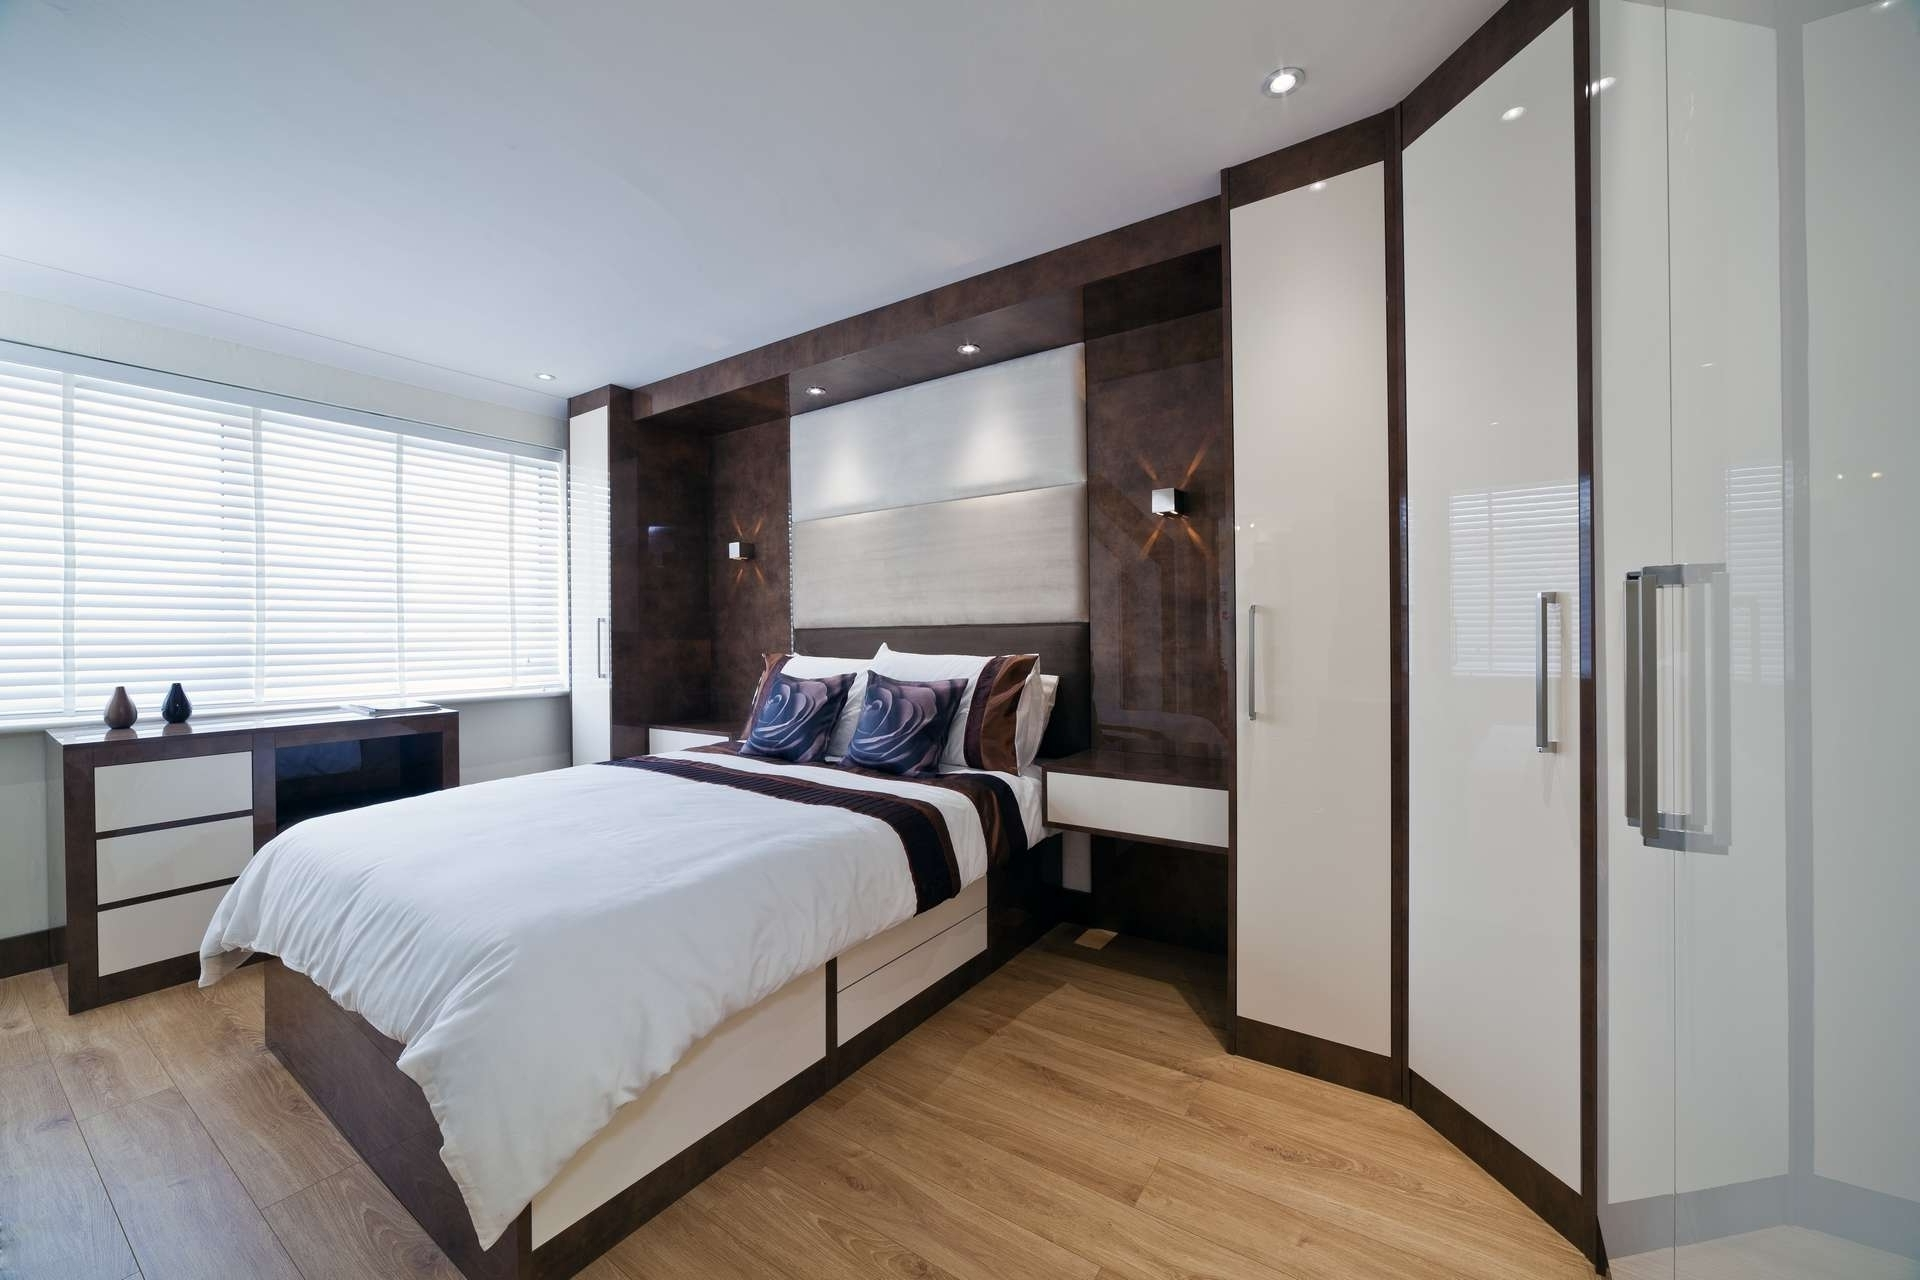 Overbed Fitted Wardrobes Bedroom Furniture (View 3 of 15)